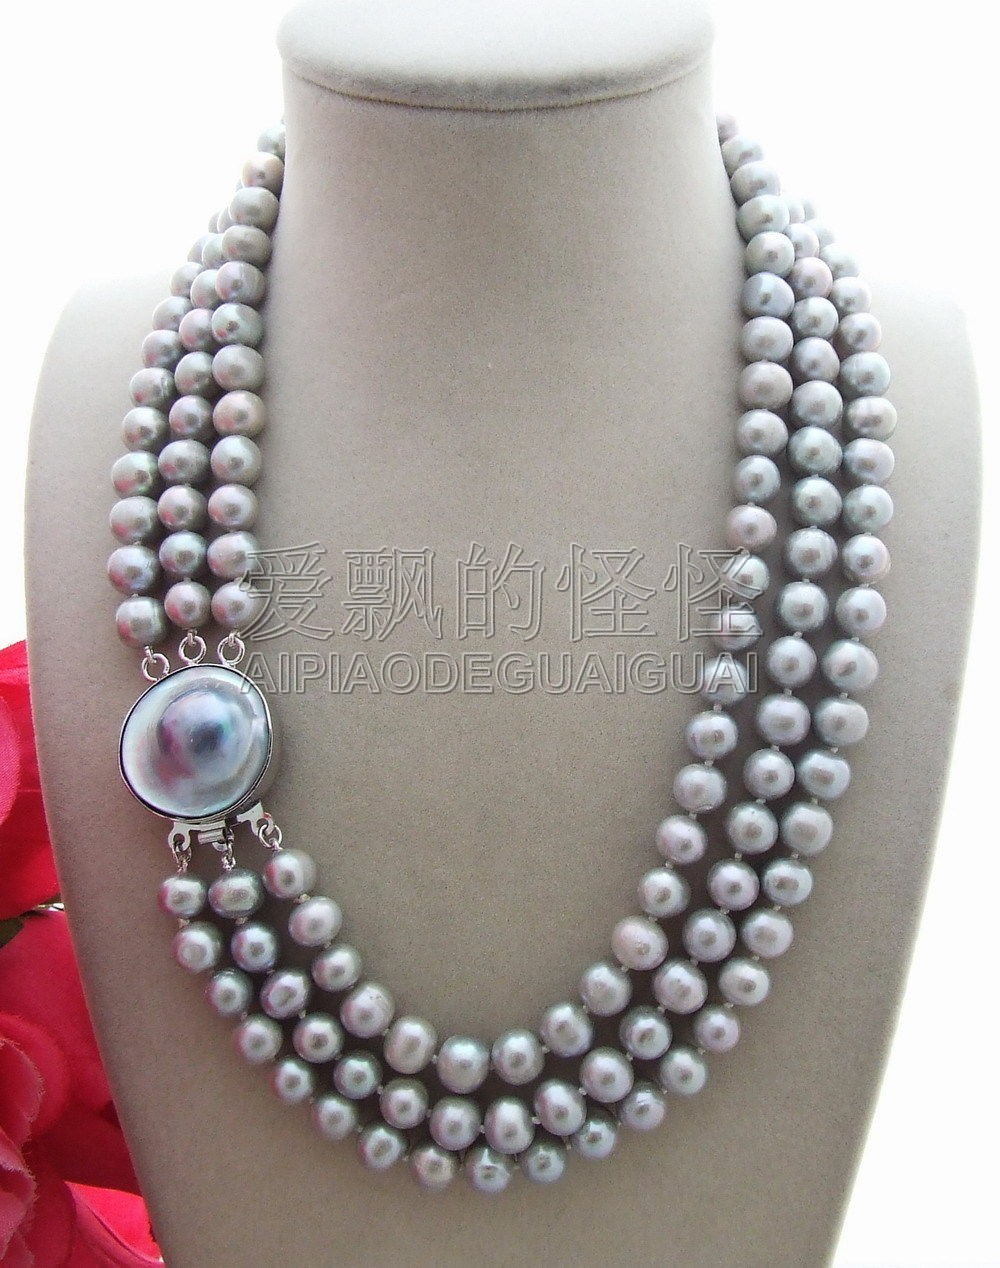 N130728 Beautiful! 9mm Grey Pearl Necklace-Mabe ClaspN130728 Beautiful! 9mm Grey Pearl Necklace-Mabe Clasp